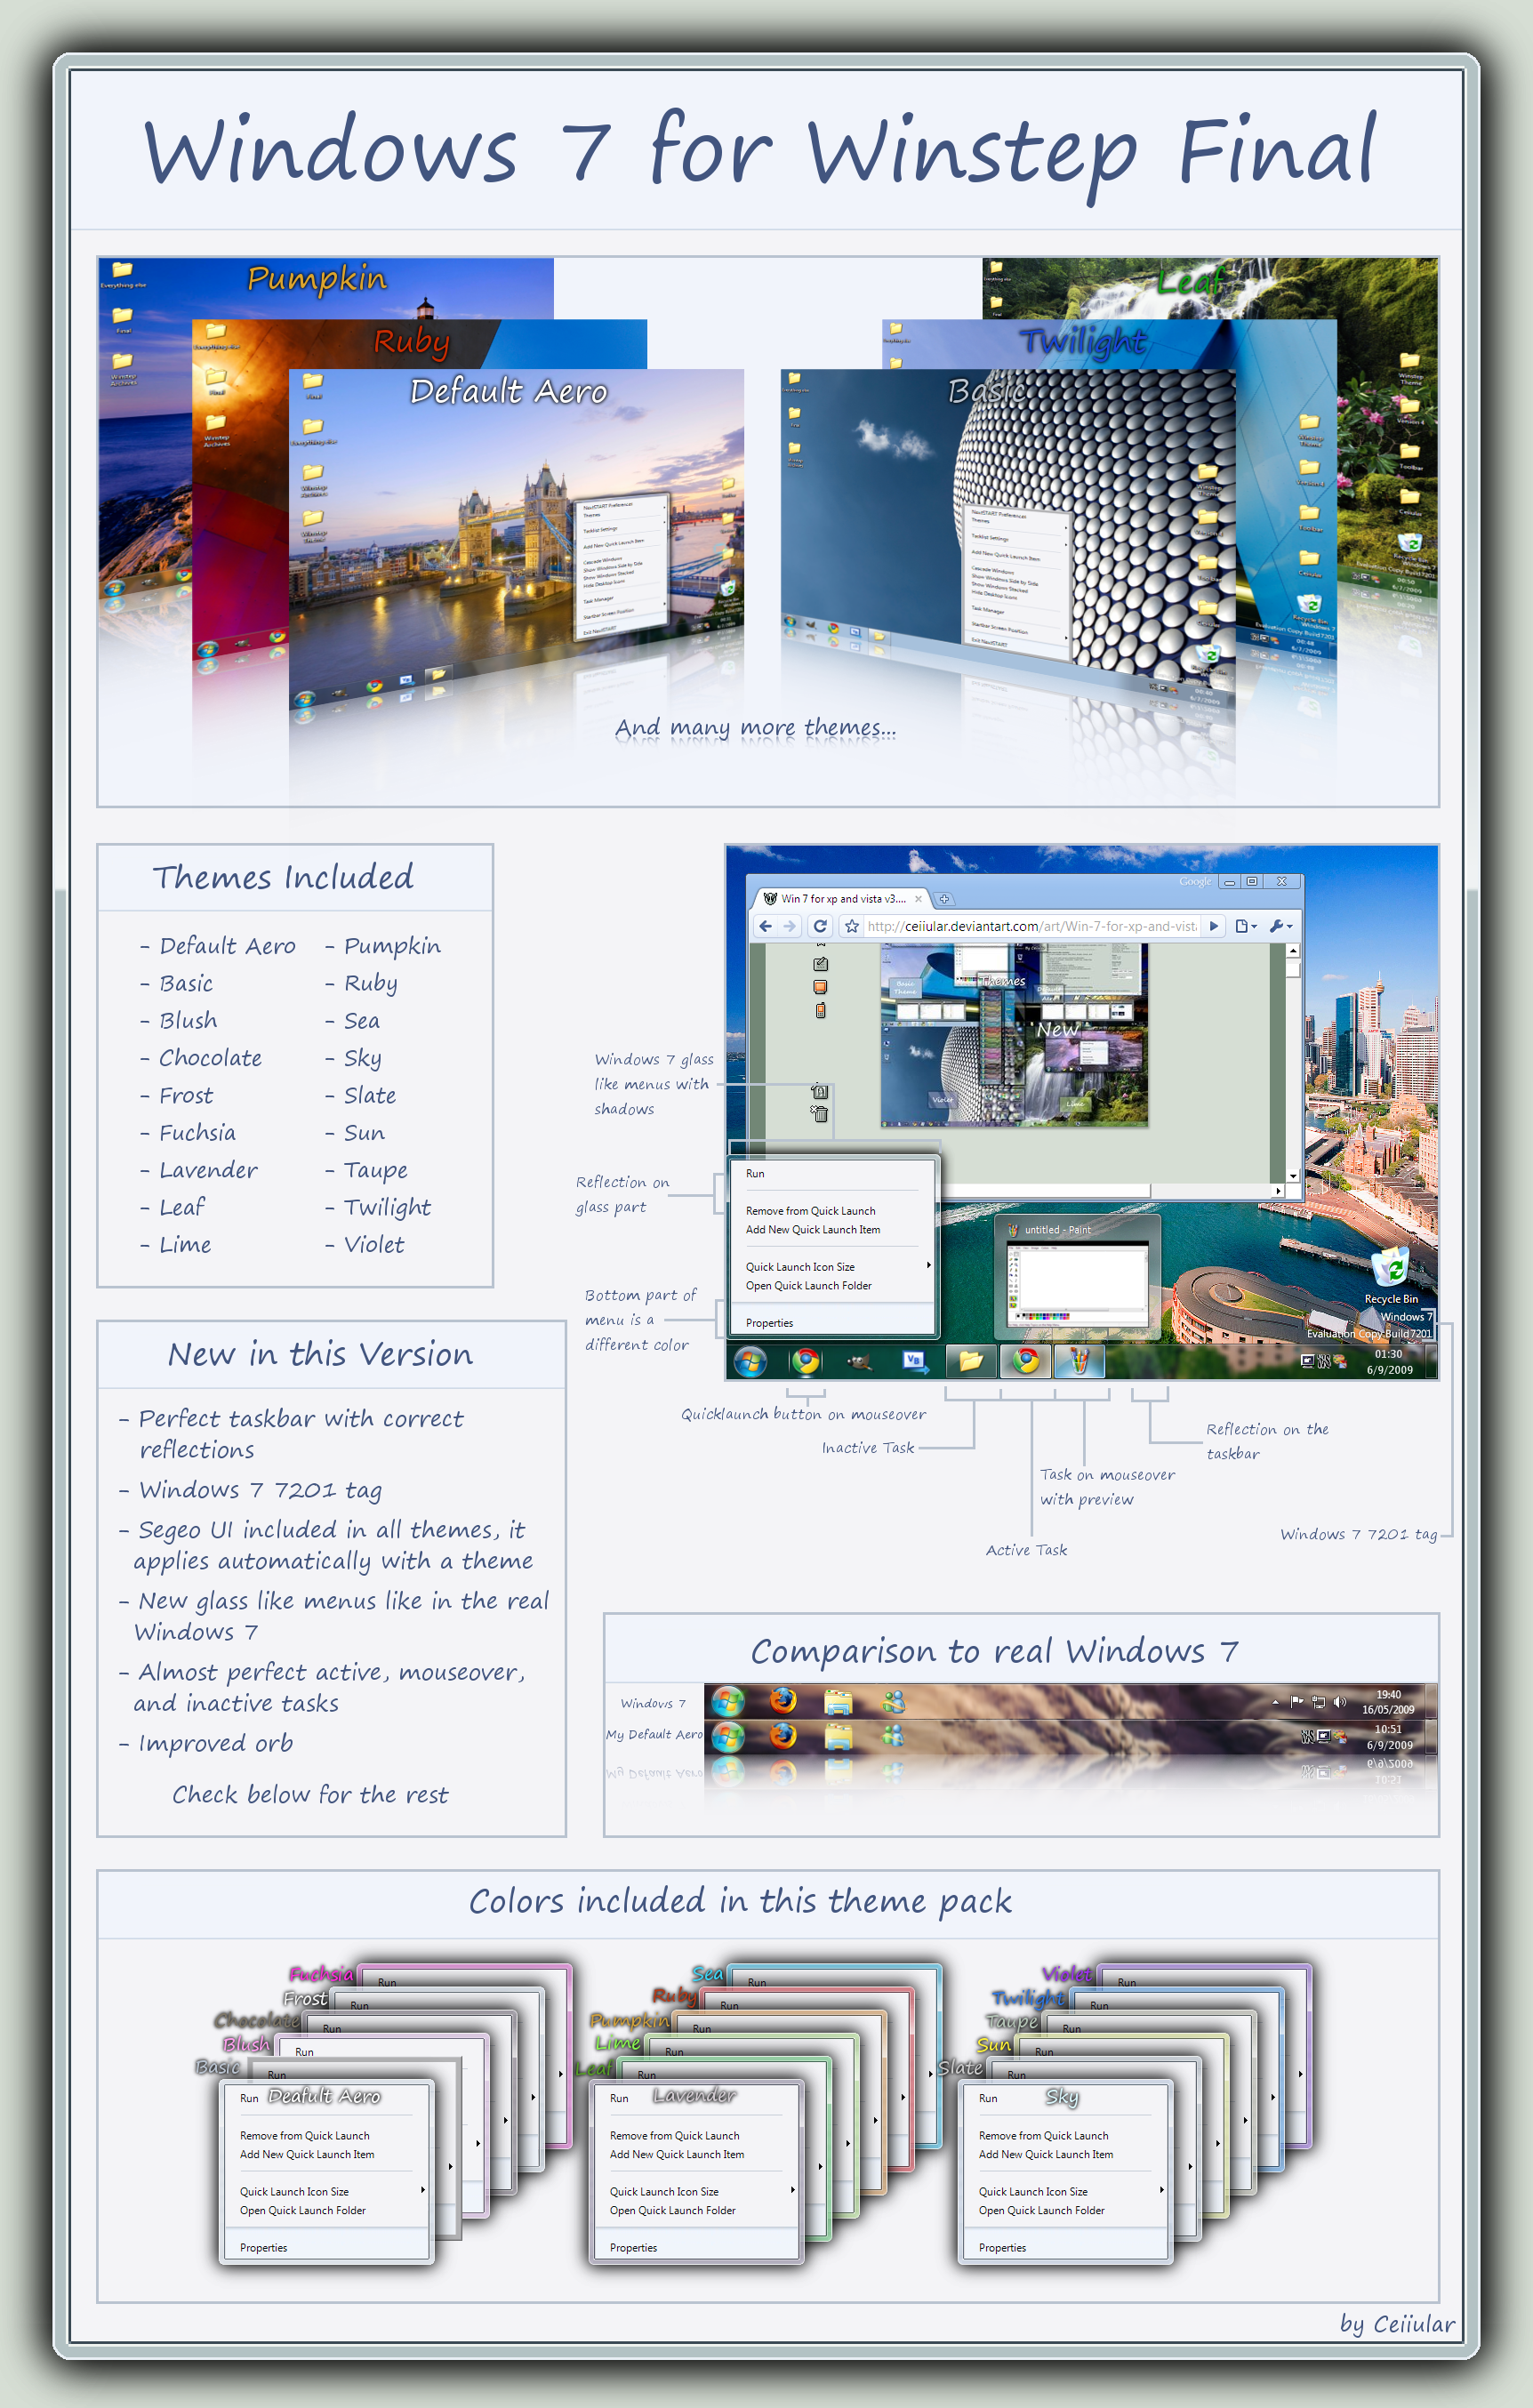 Windows 7 for Winstep Final by CeIIular